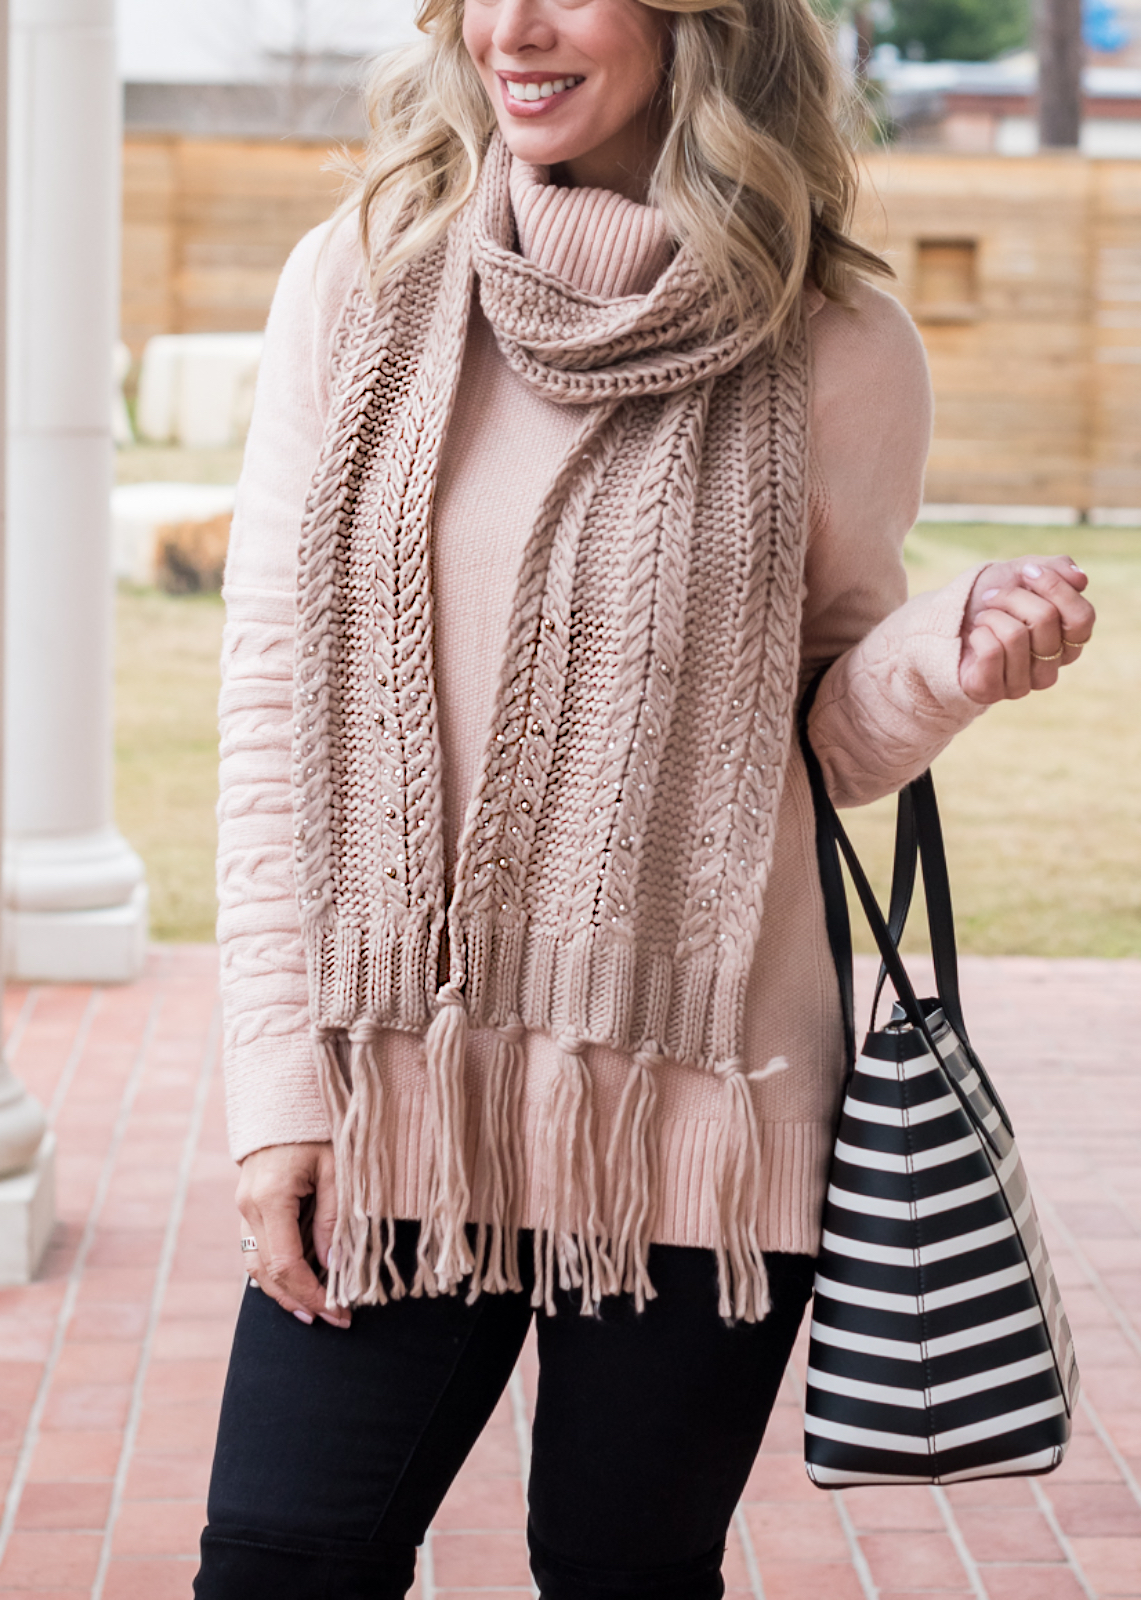 Cute winter outfit - pink sweater and black jeans (1)